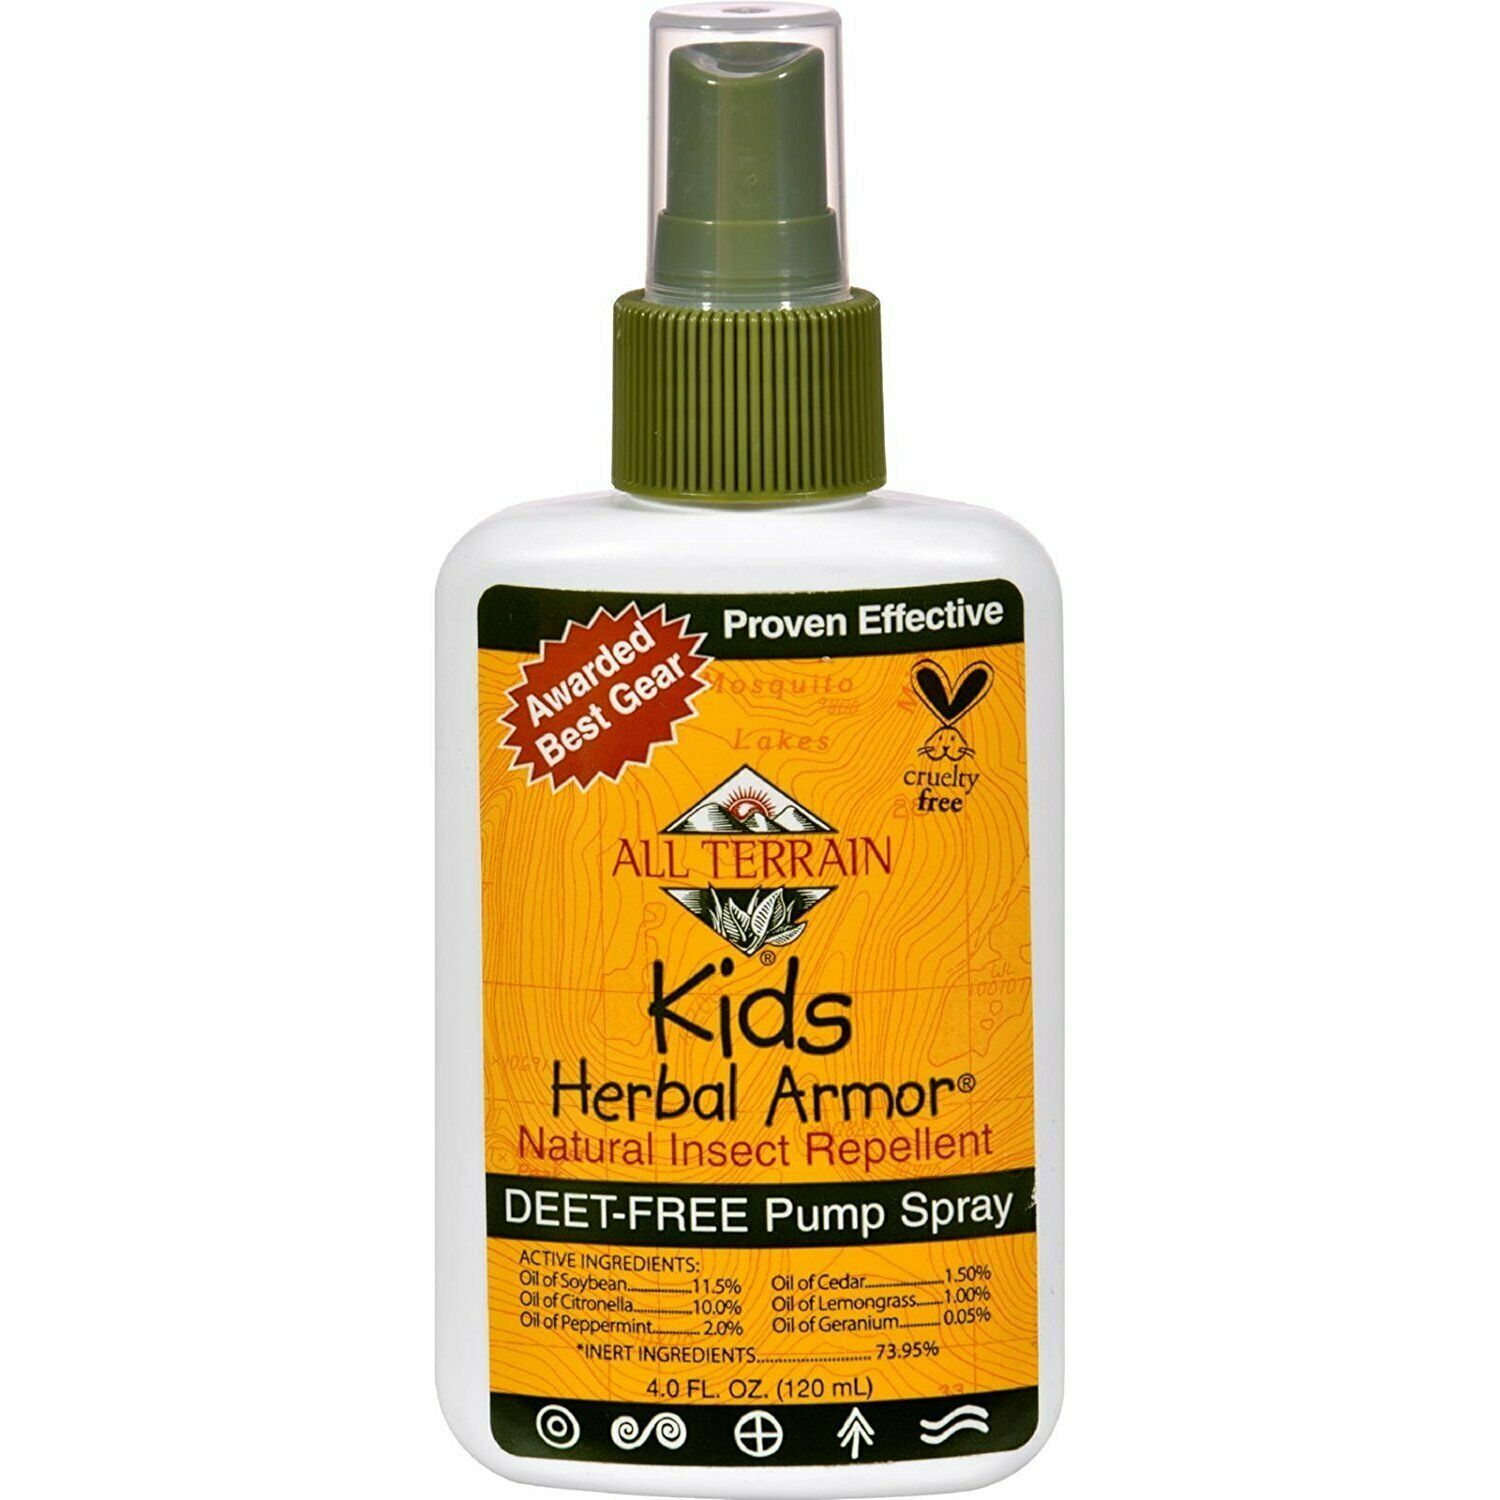 All Terrain Kids Herbal Armor DEET &GMO Free Natural Insect Repellent 4 oz Spray